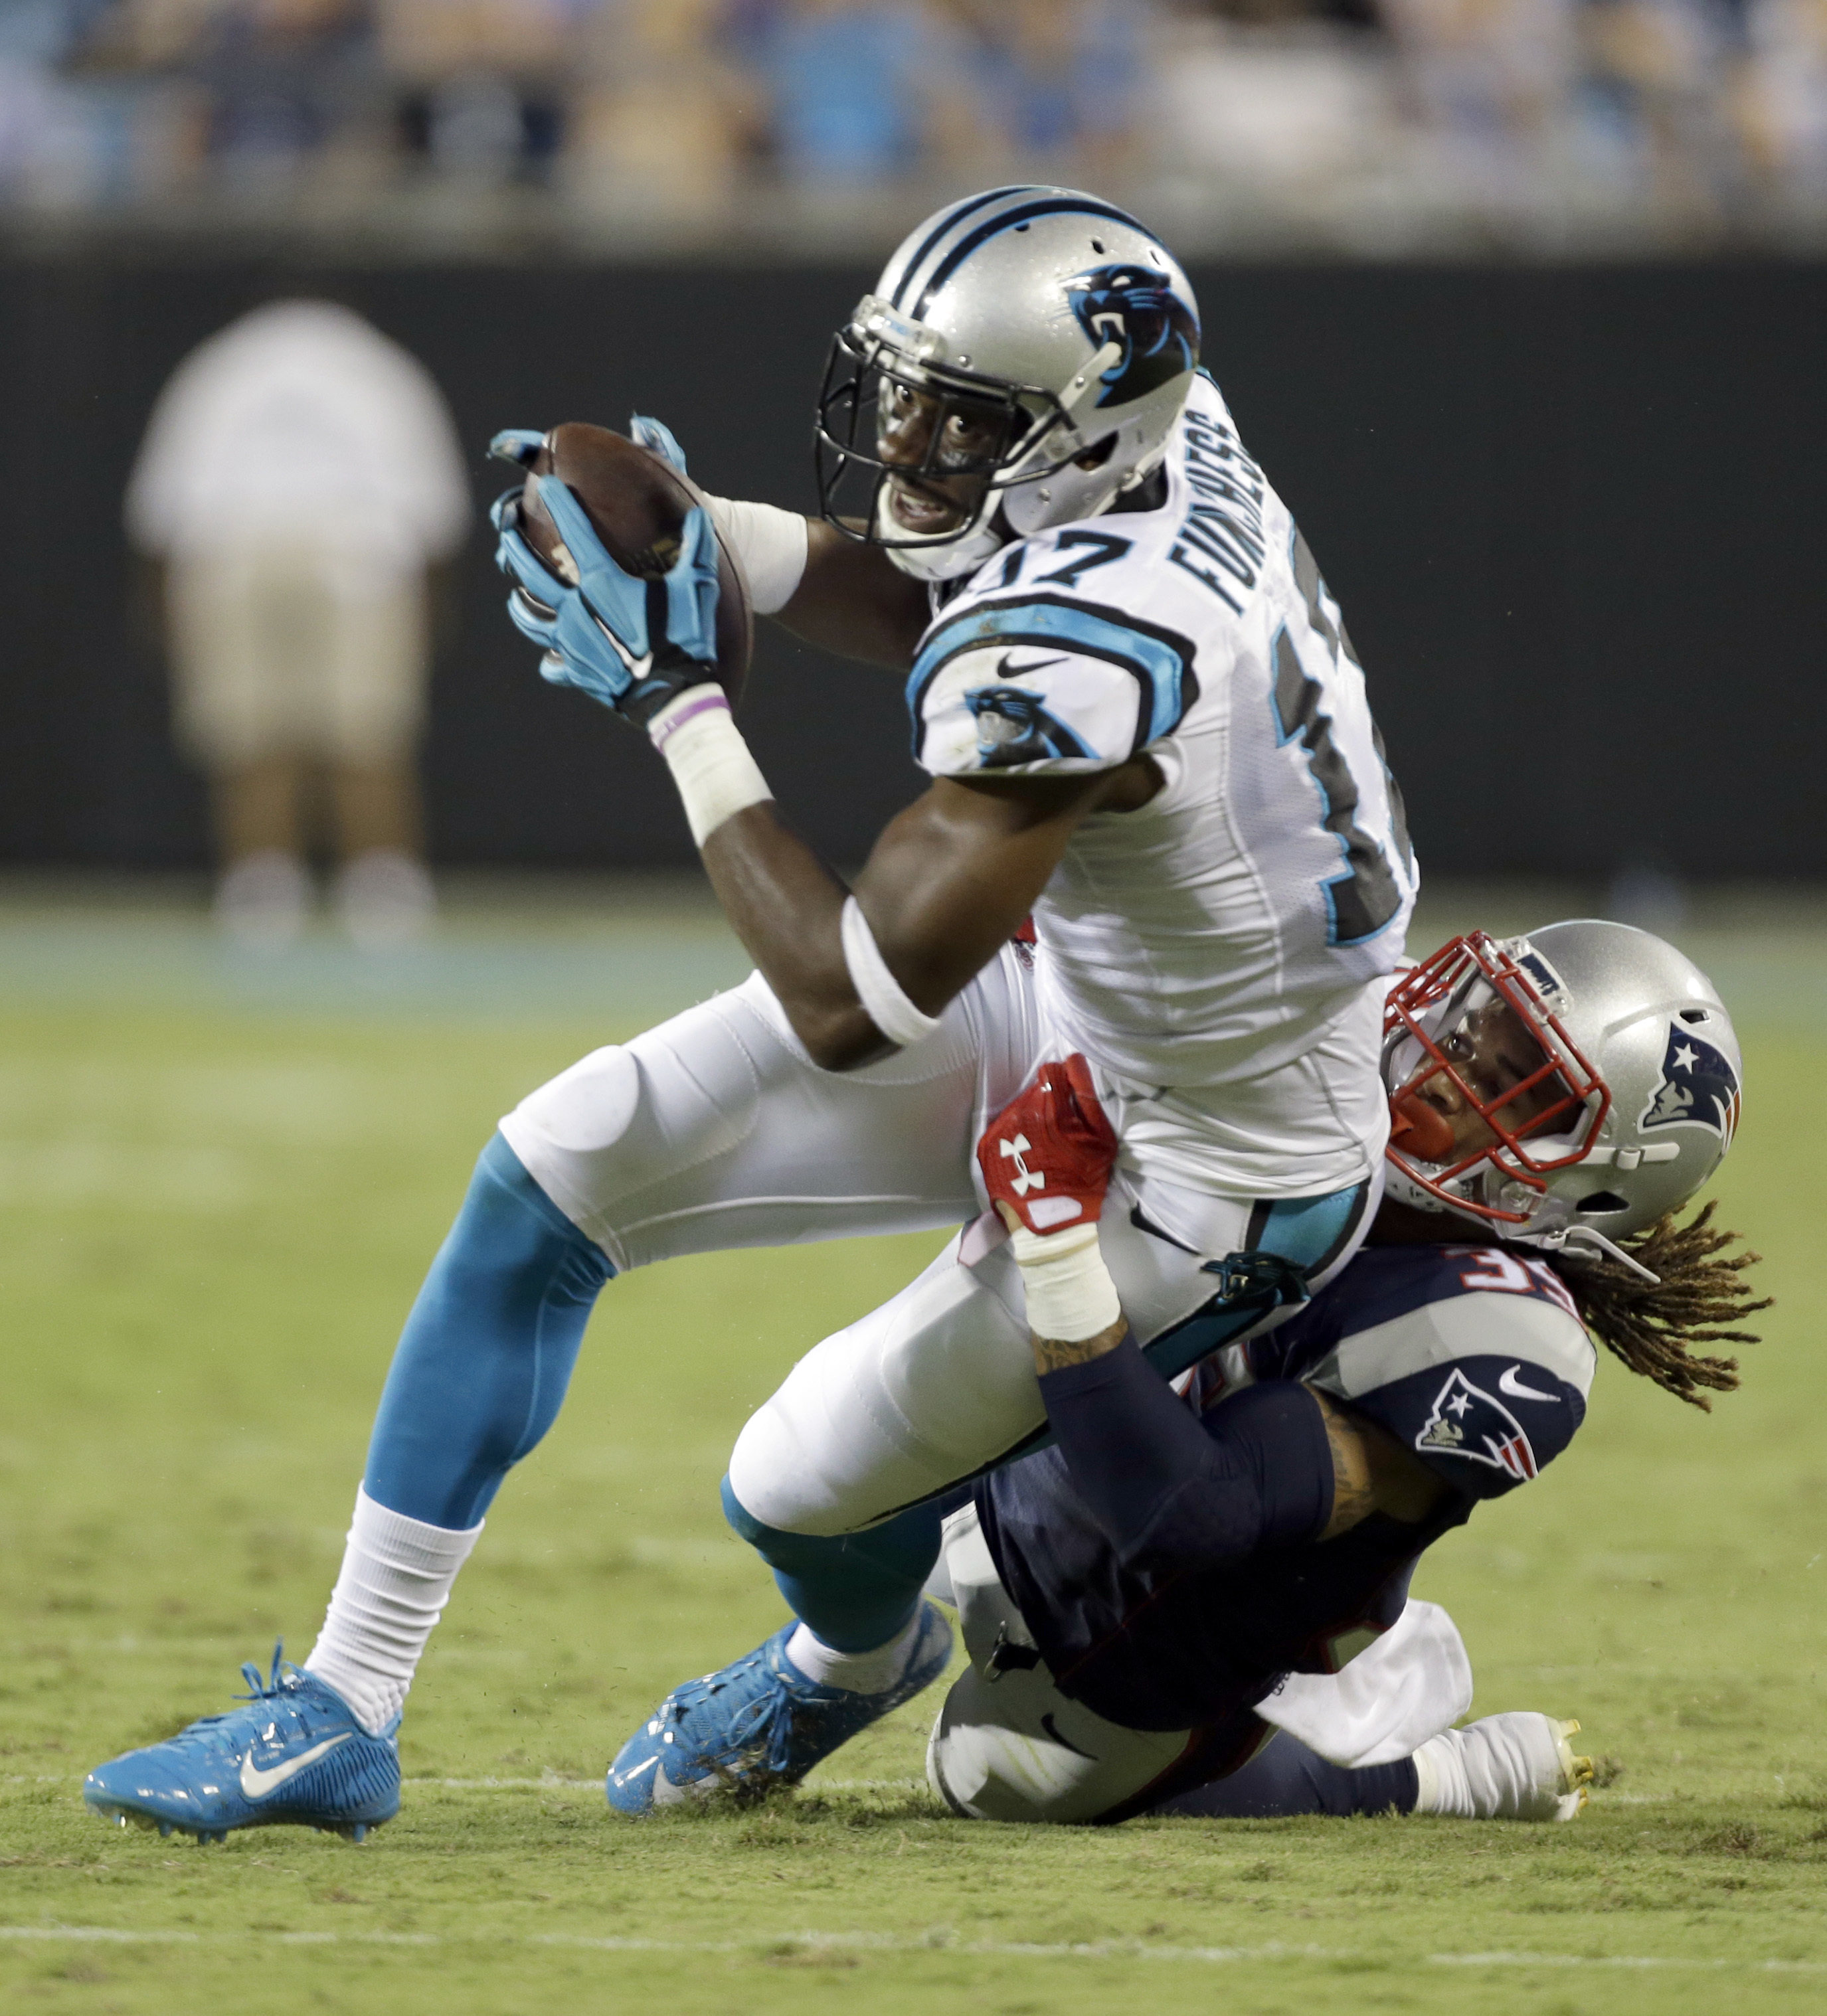 Carolina Panthers' Devin Funchess (17) is tackled by New England Patriots' Cre'von LeBlanc (35) during the first half of a preseason NFL football game in Charlotte, N.C., Friday, Aug. 26, 2016. (AP Photo/Bob Leverone)